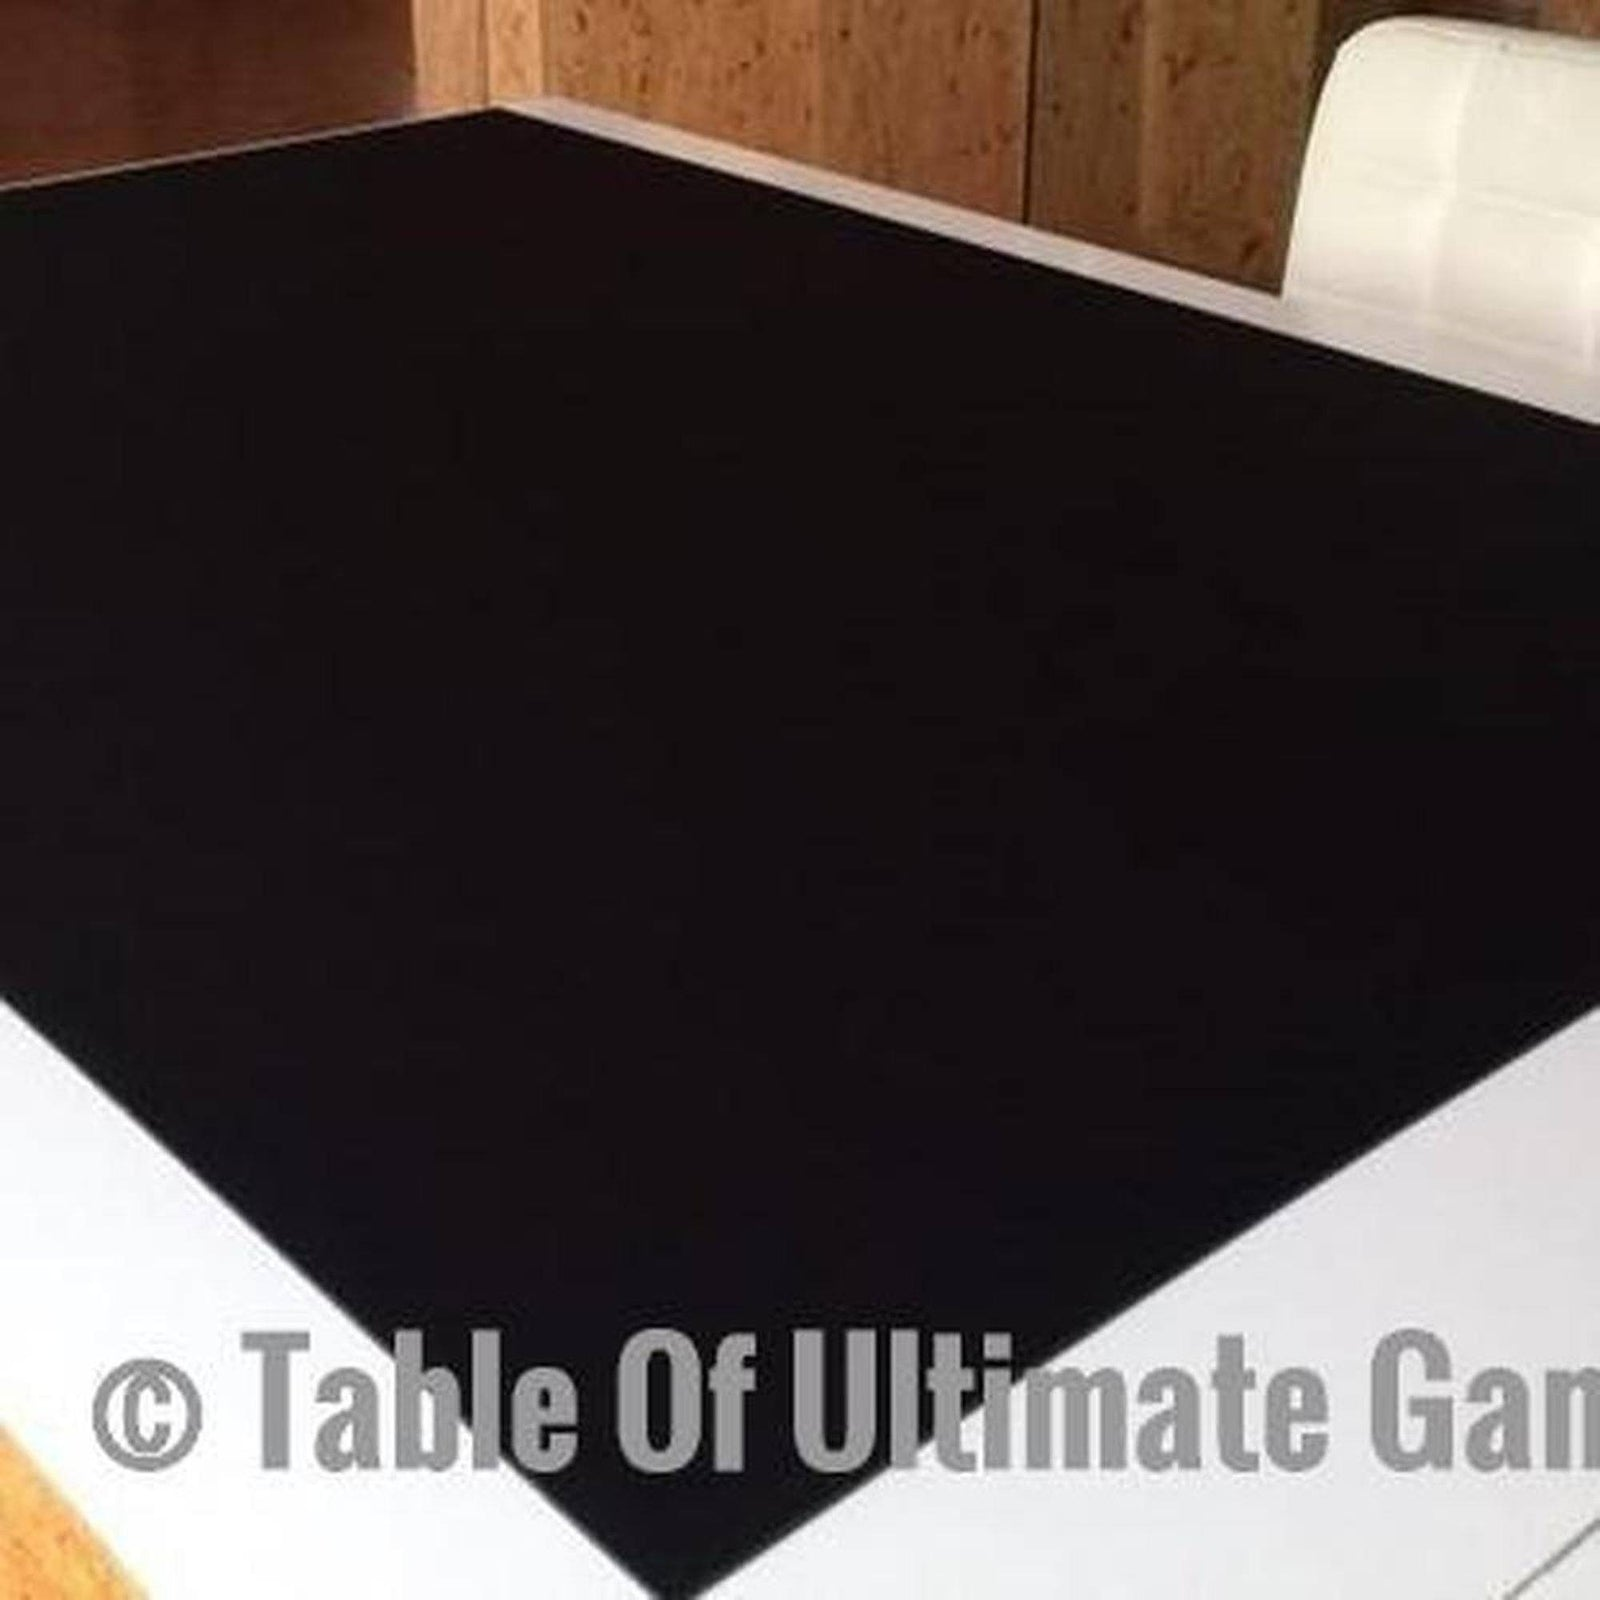 Table Mats - fits Elite Series and Warhammer Special Edition - Table of Ultimate Gaming